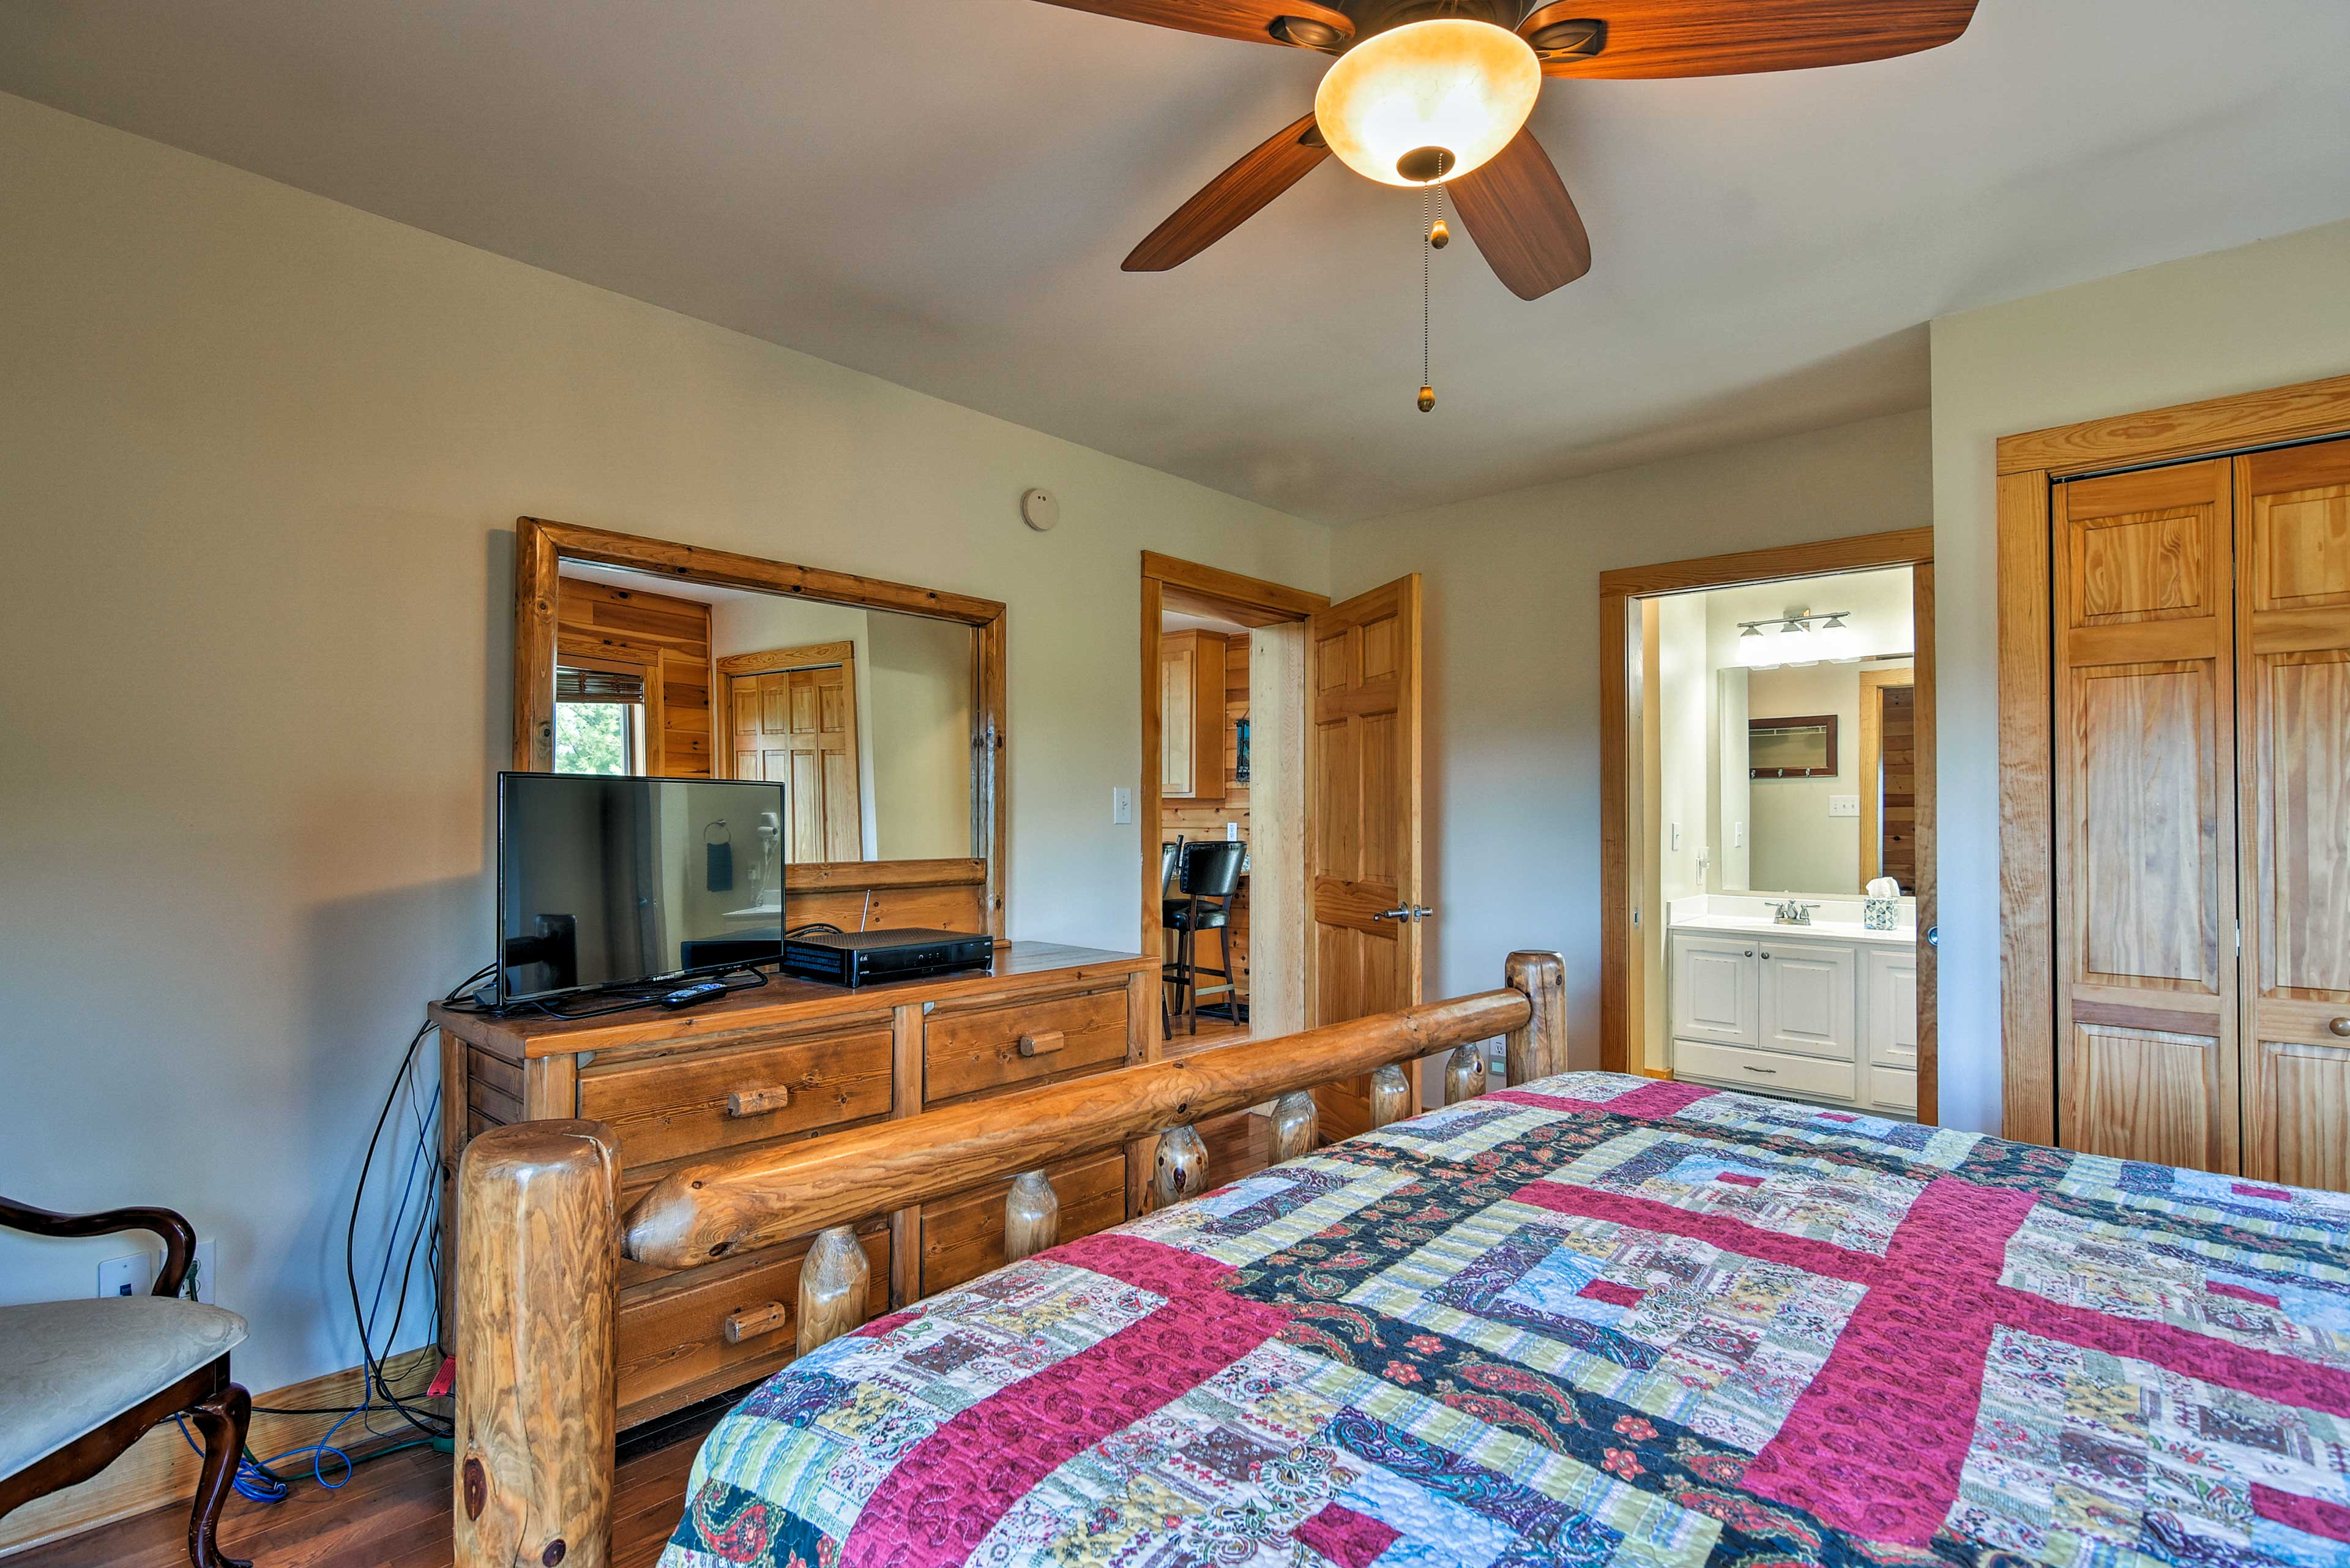 The master bedroom includes a flat-screen satellite TV and en-suite bathroom.